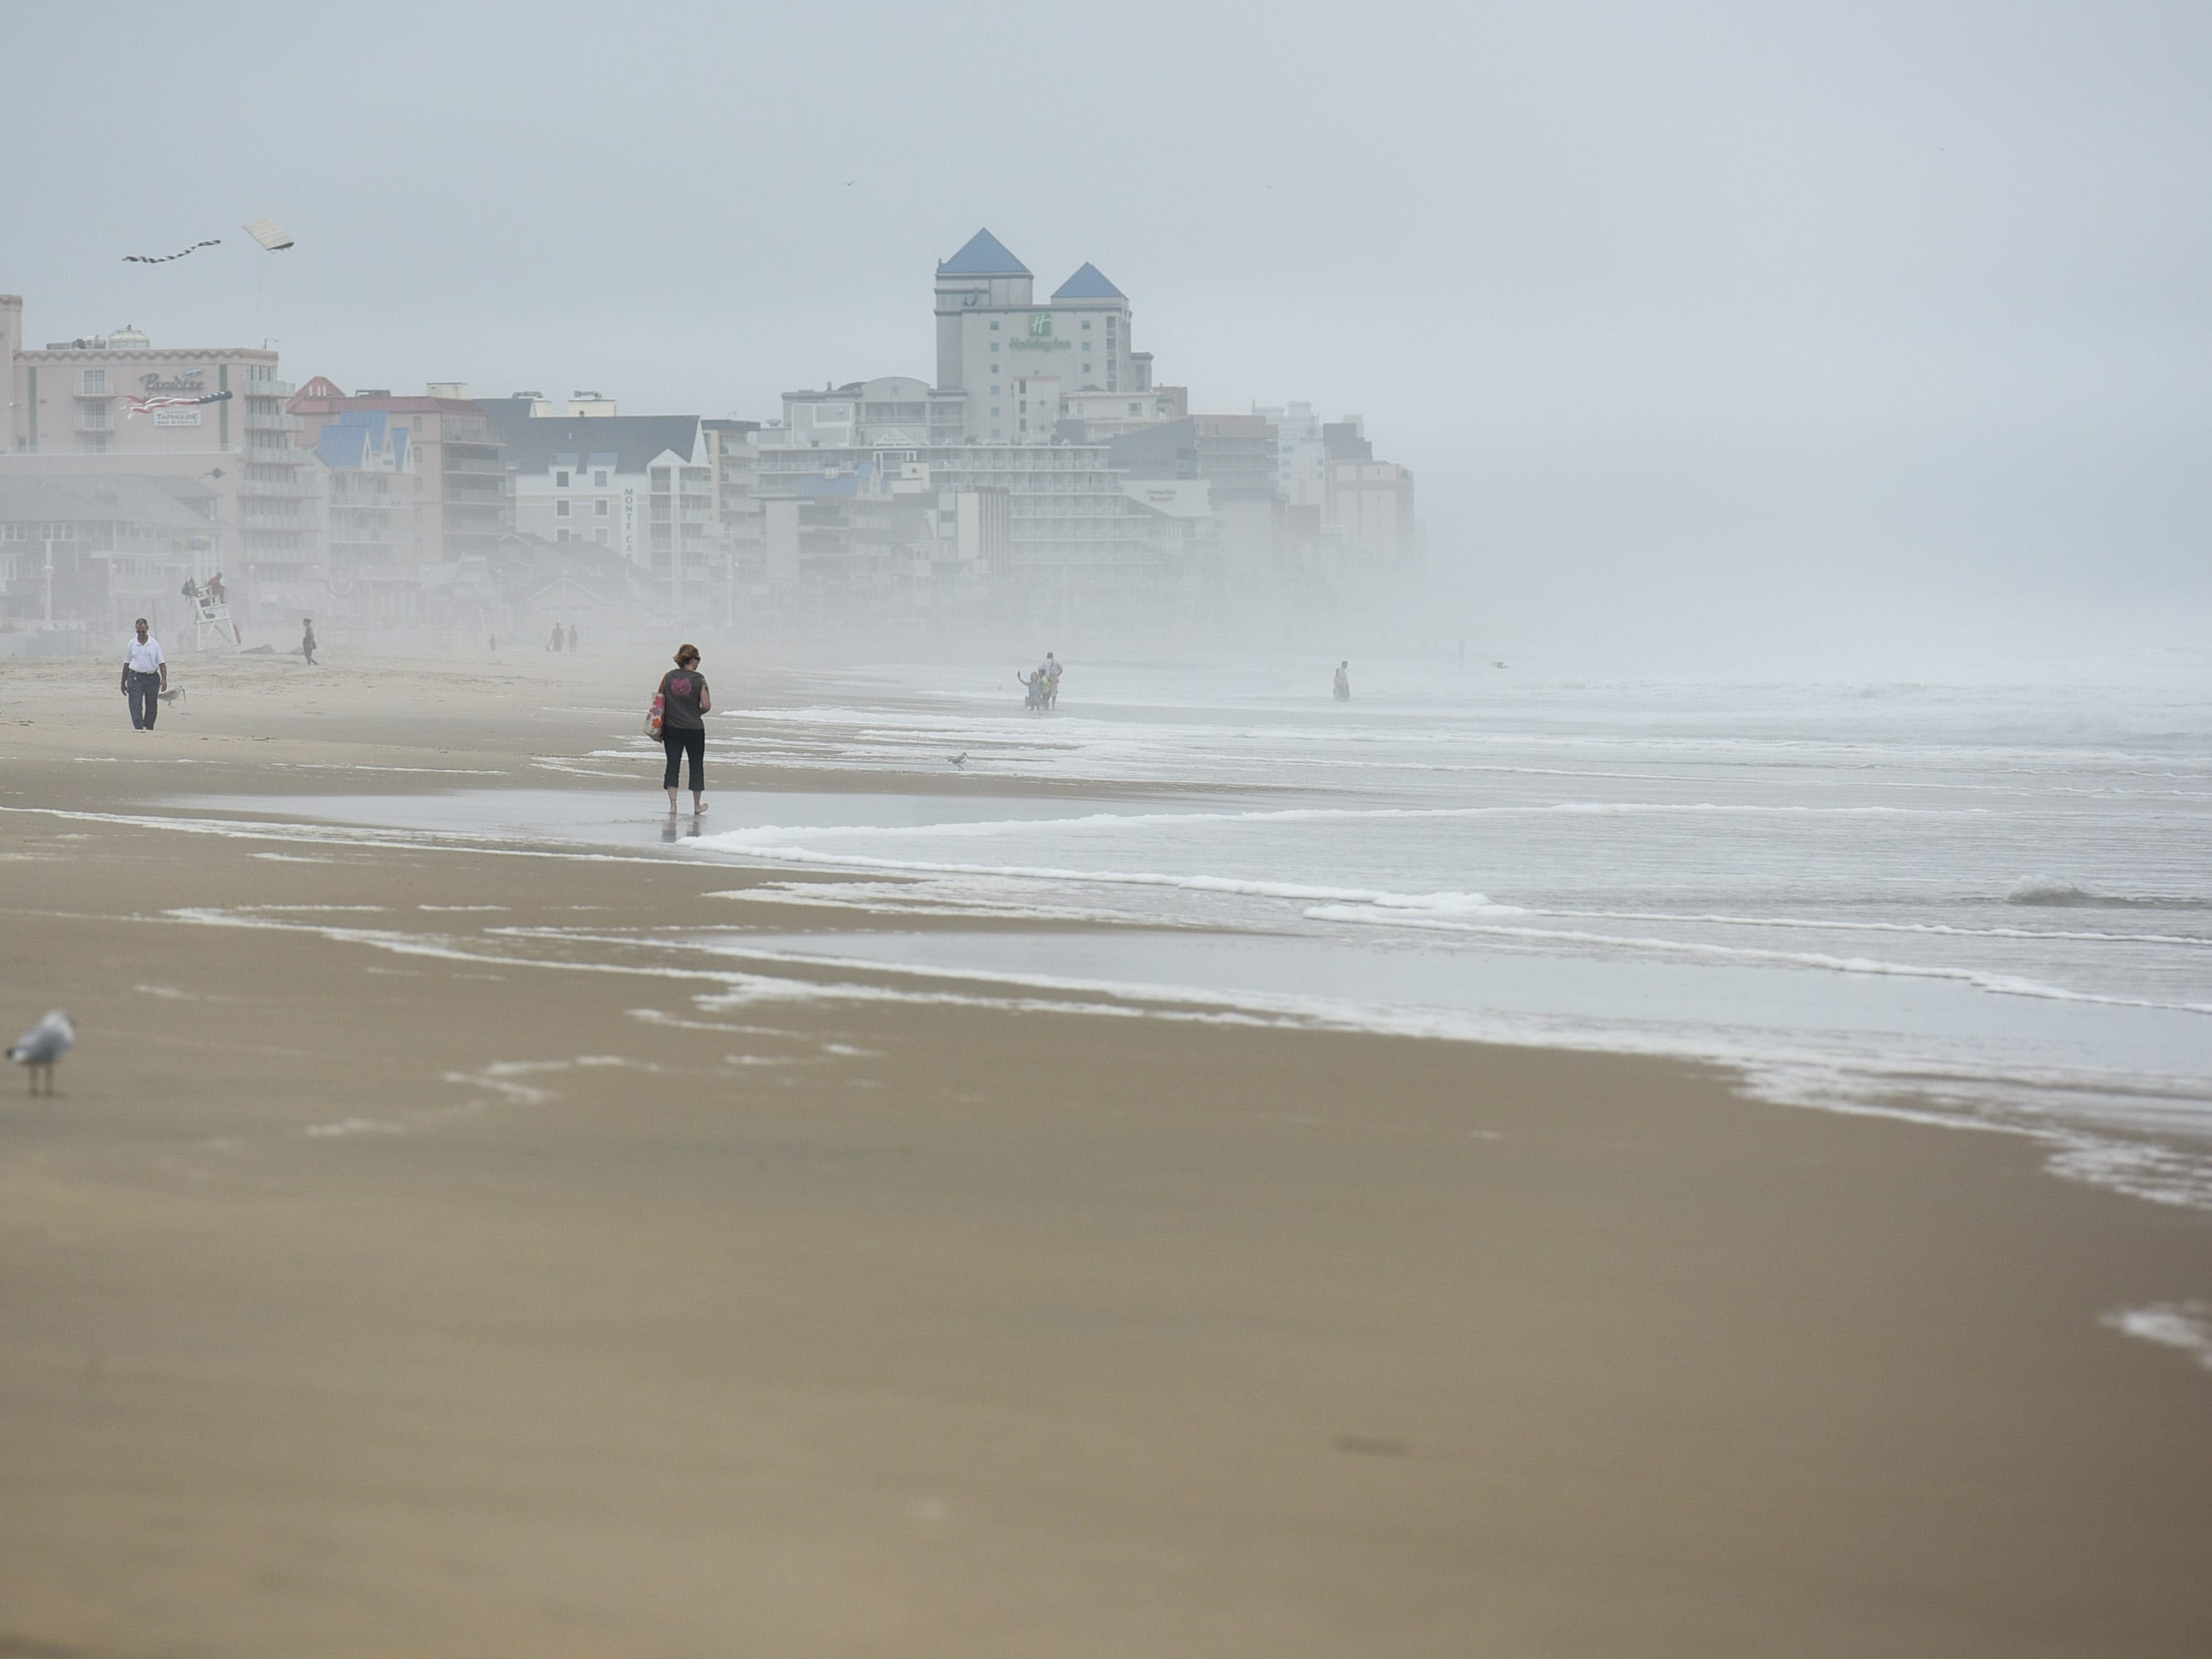 Visitors walk on the beach in Ocean City. The area saw mild flooding, wind and rough surf on Thursday, Sept 13.